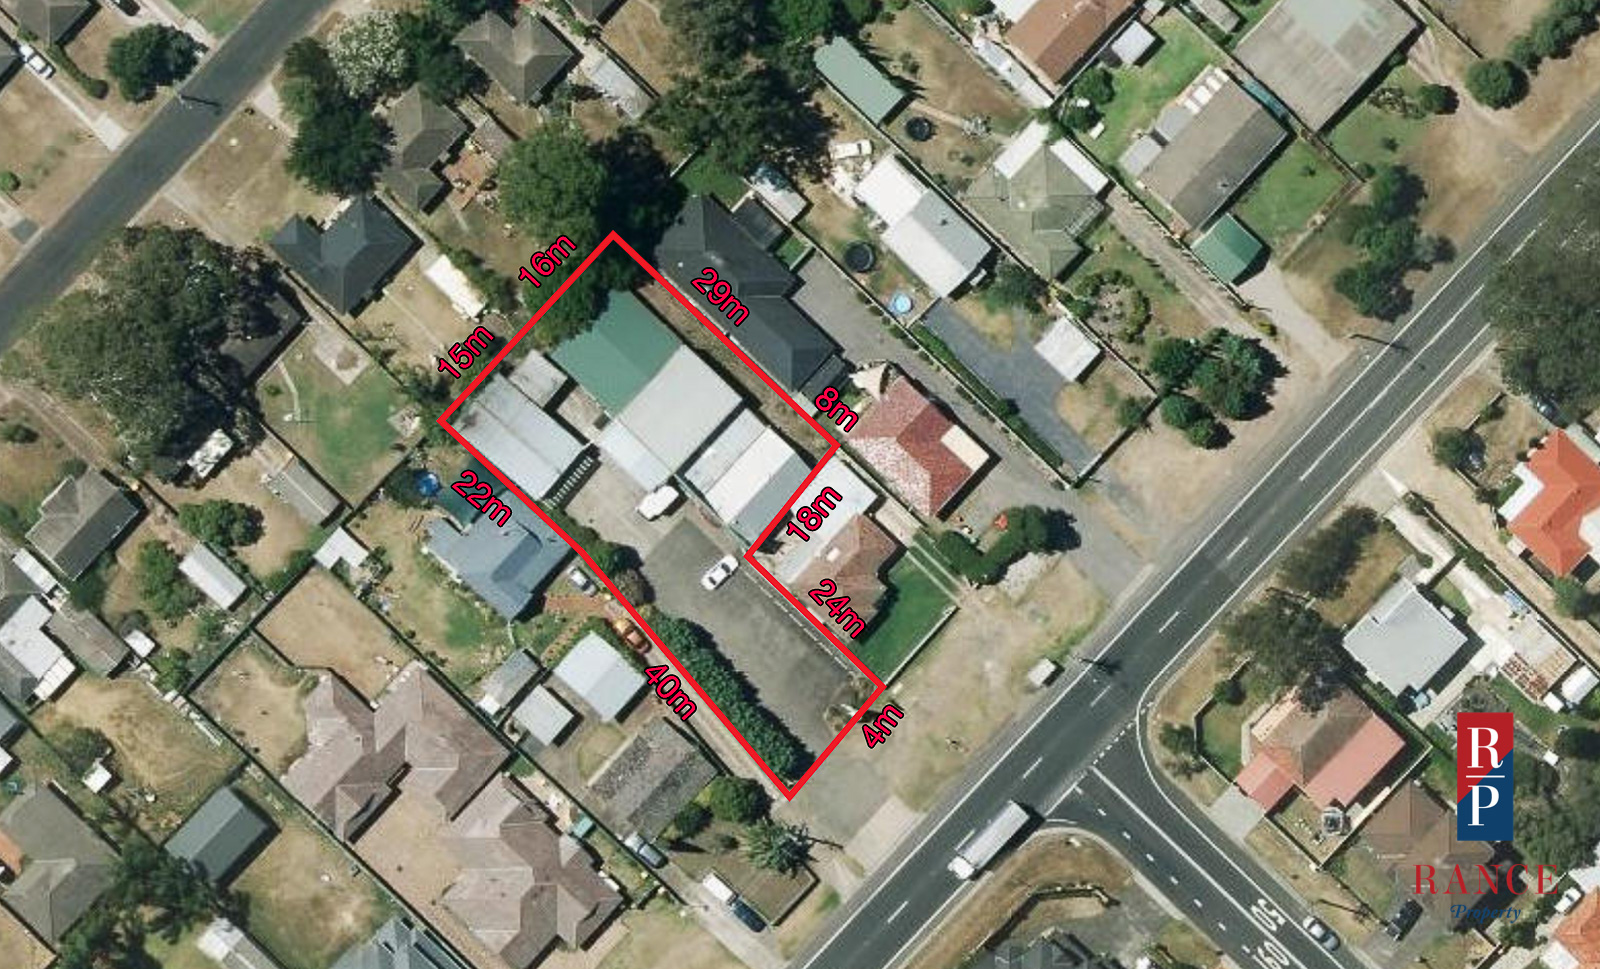 Rance Property Real Estate Agency In Kenthurst Nsw 2156